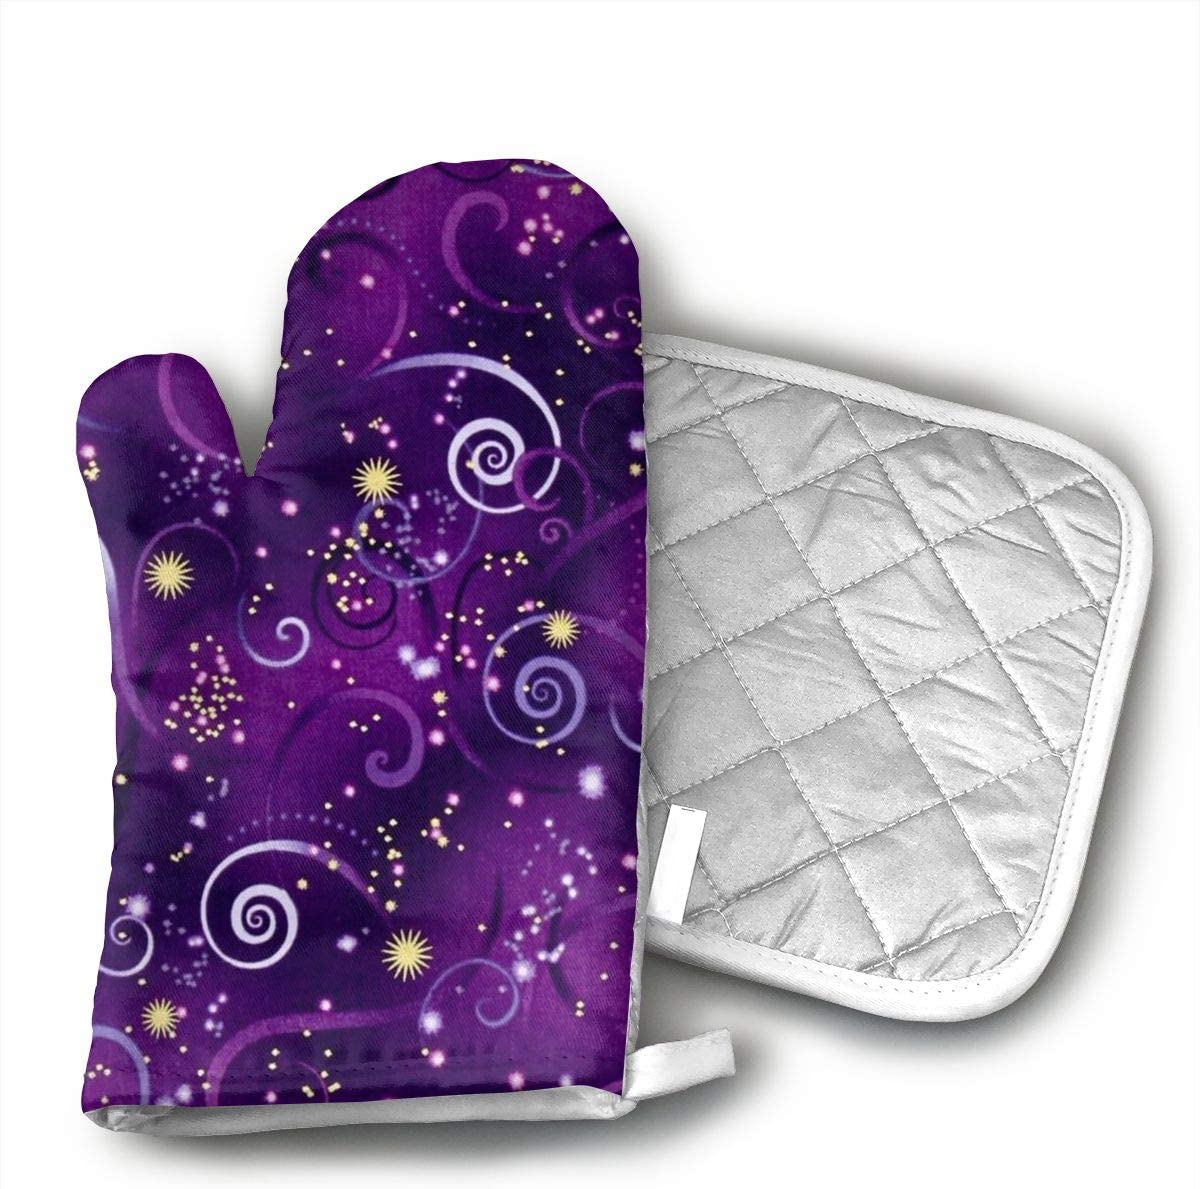 Dragonfly Metallic Swirling Sky Deep Purple Oven Mitts,Professional Quality Heat Resistant Insulated Kitchen Microwave Oven Gloves,with Potholders Oven Gloves,Insulated Quilted Cotton Potholders